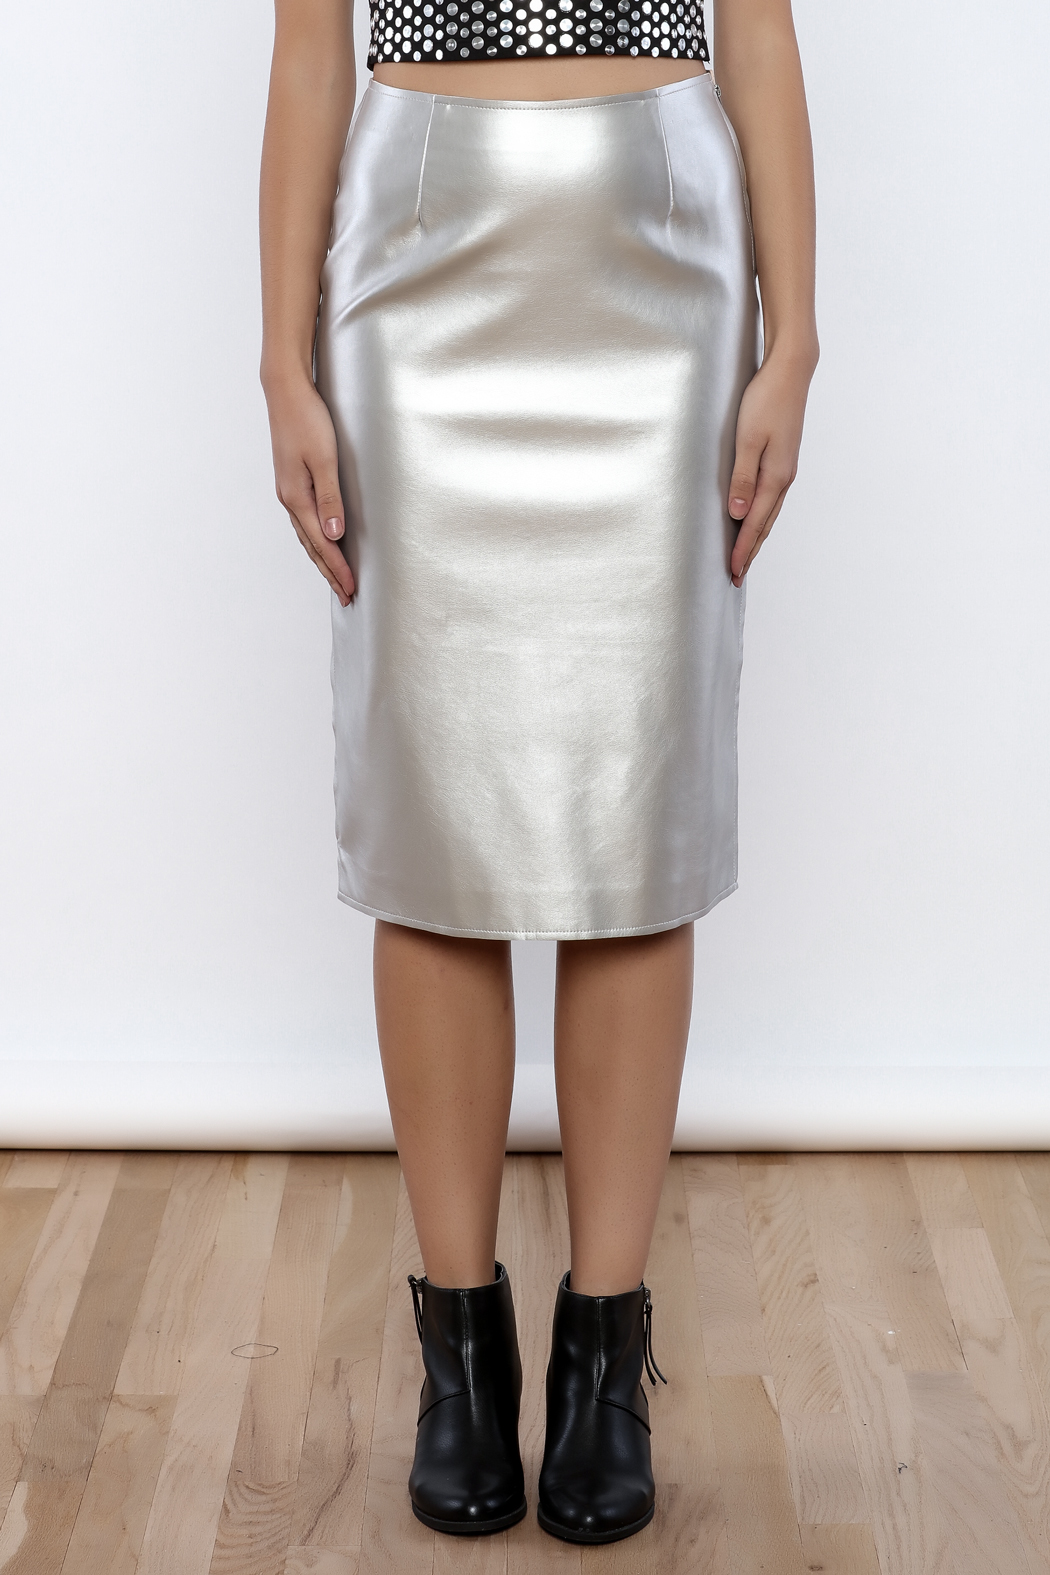 J.O.A. FAux Leather Pencil Skirt - Side Cropped Image